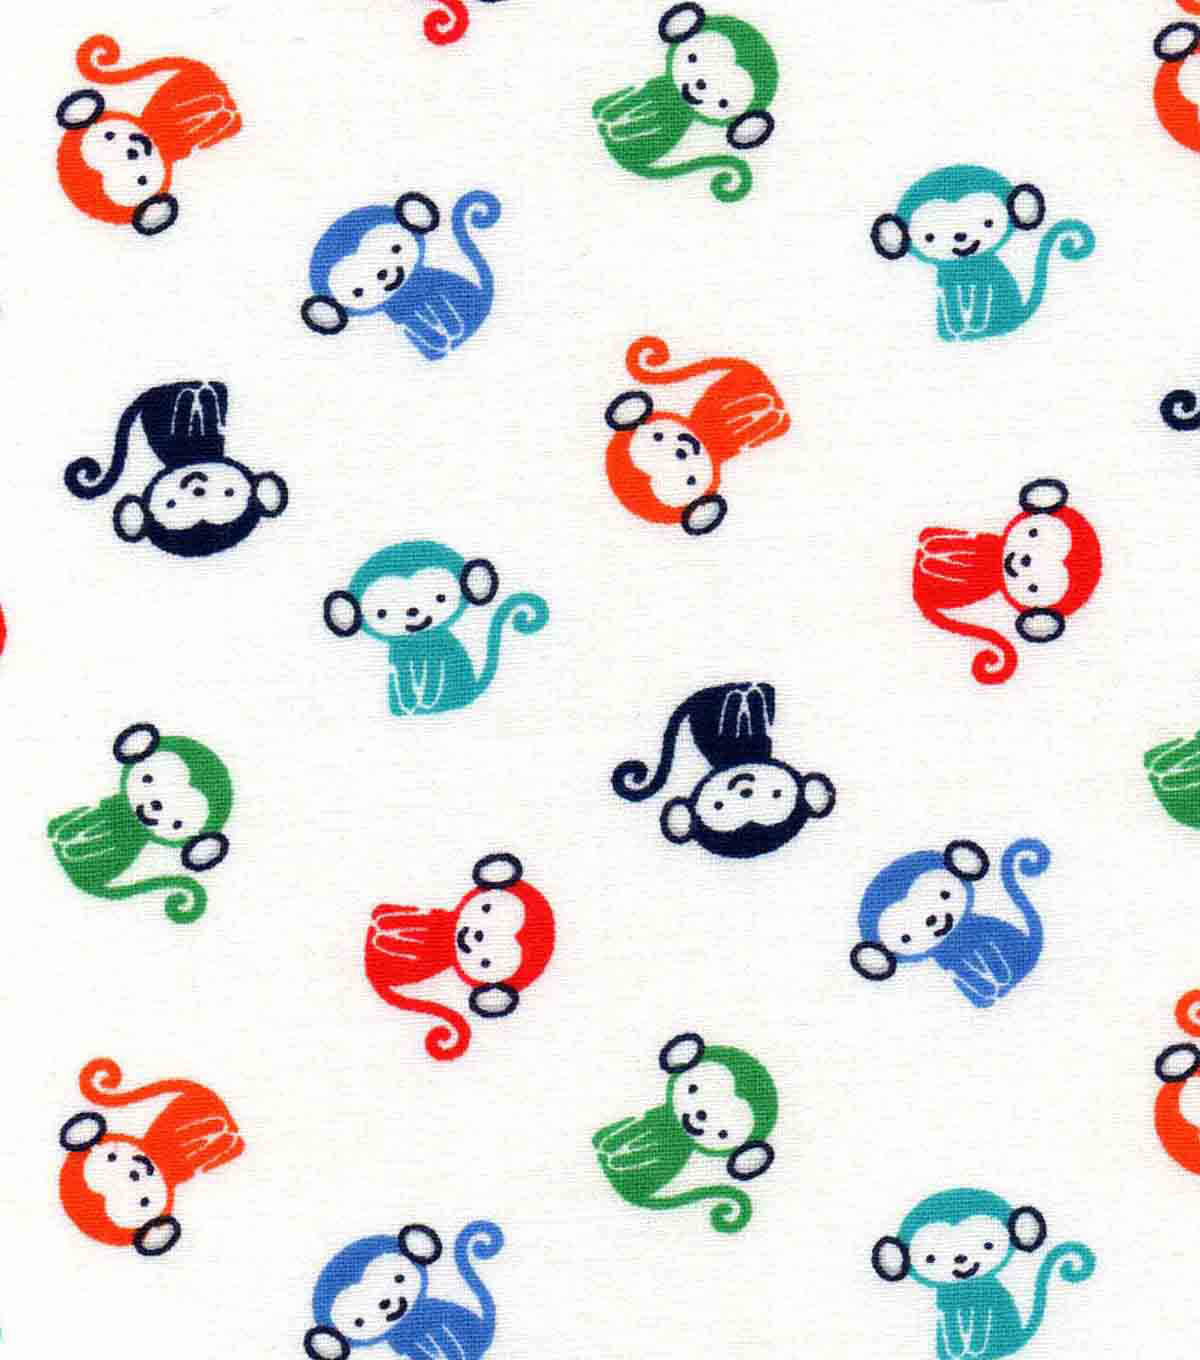 Nursery Cotton Fabric -All Over Monkey